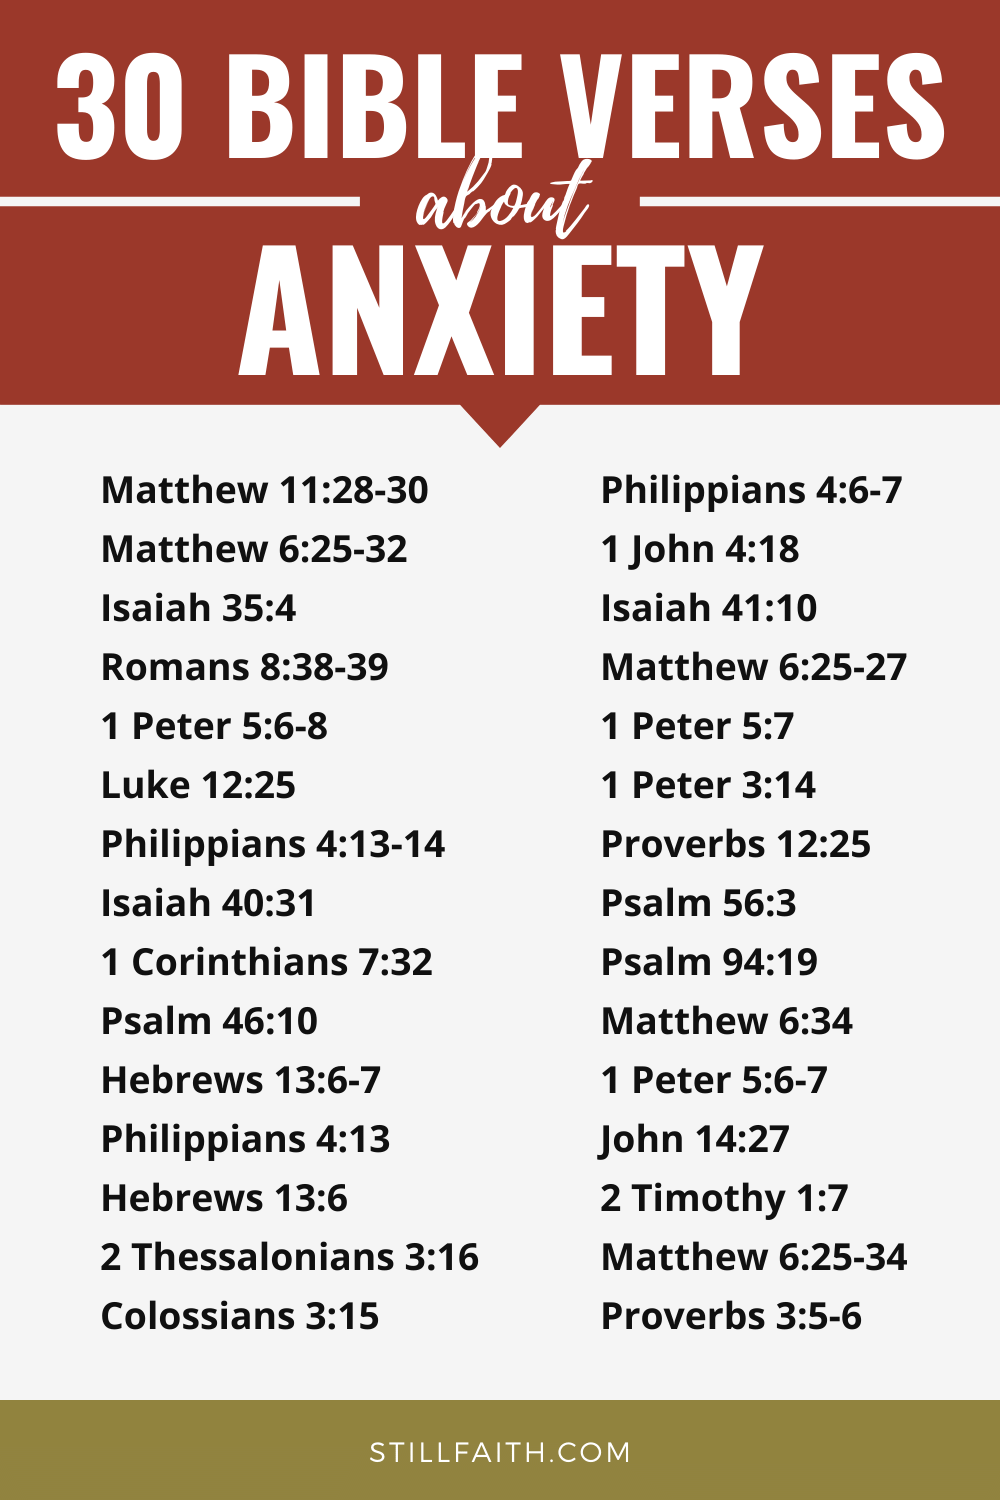 113 Bible Verses about Anxiety